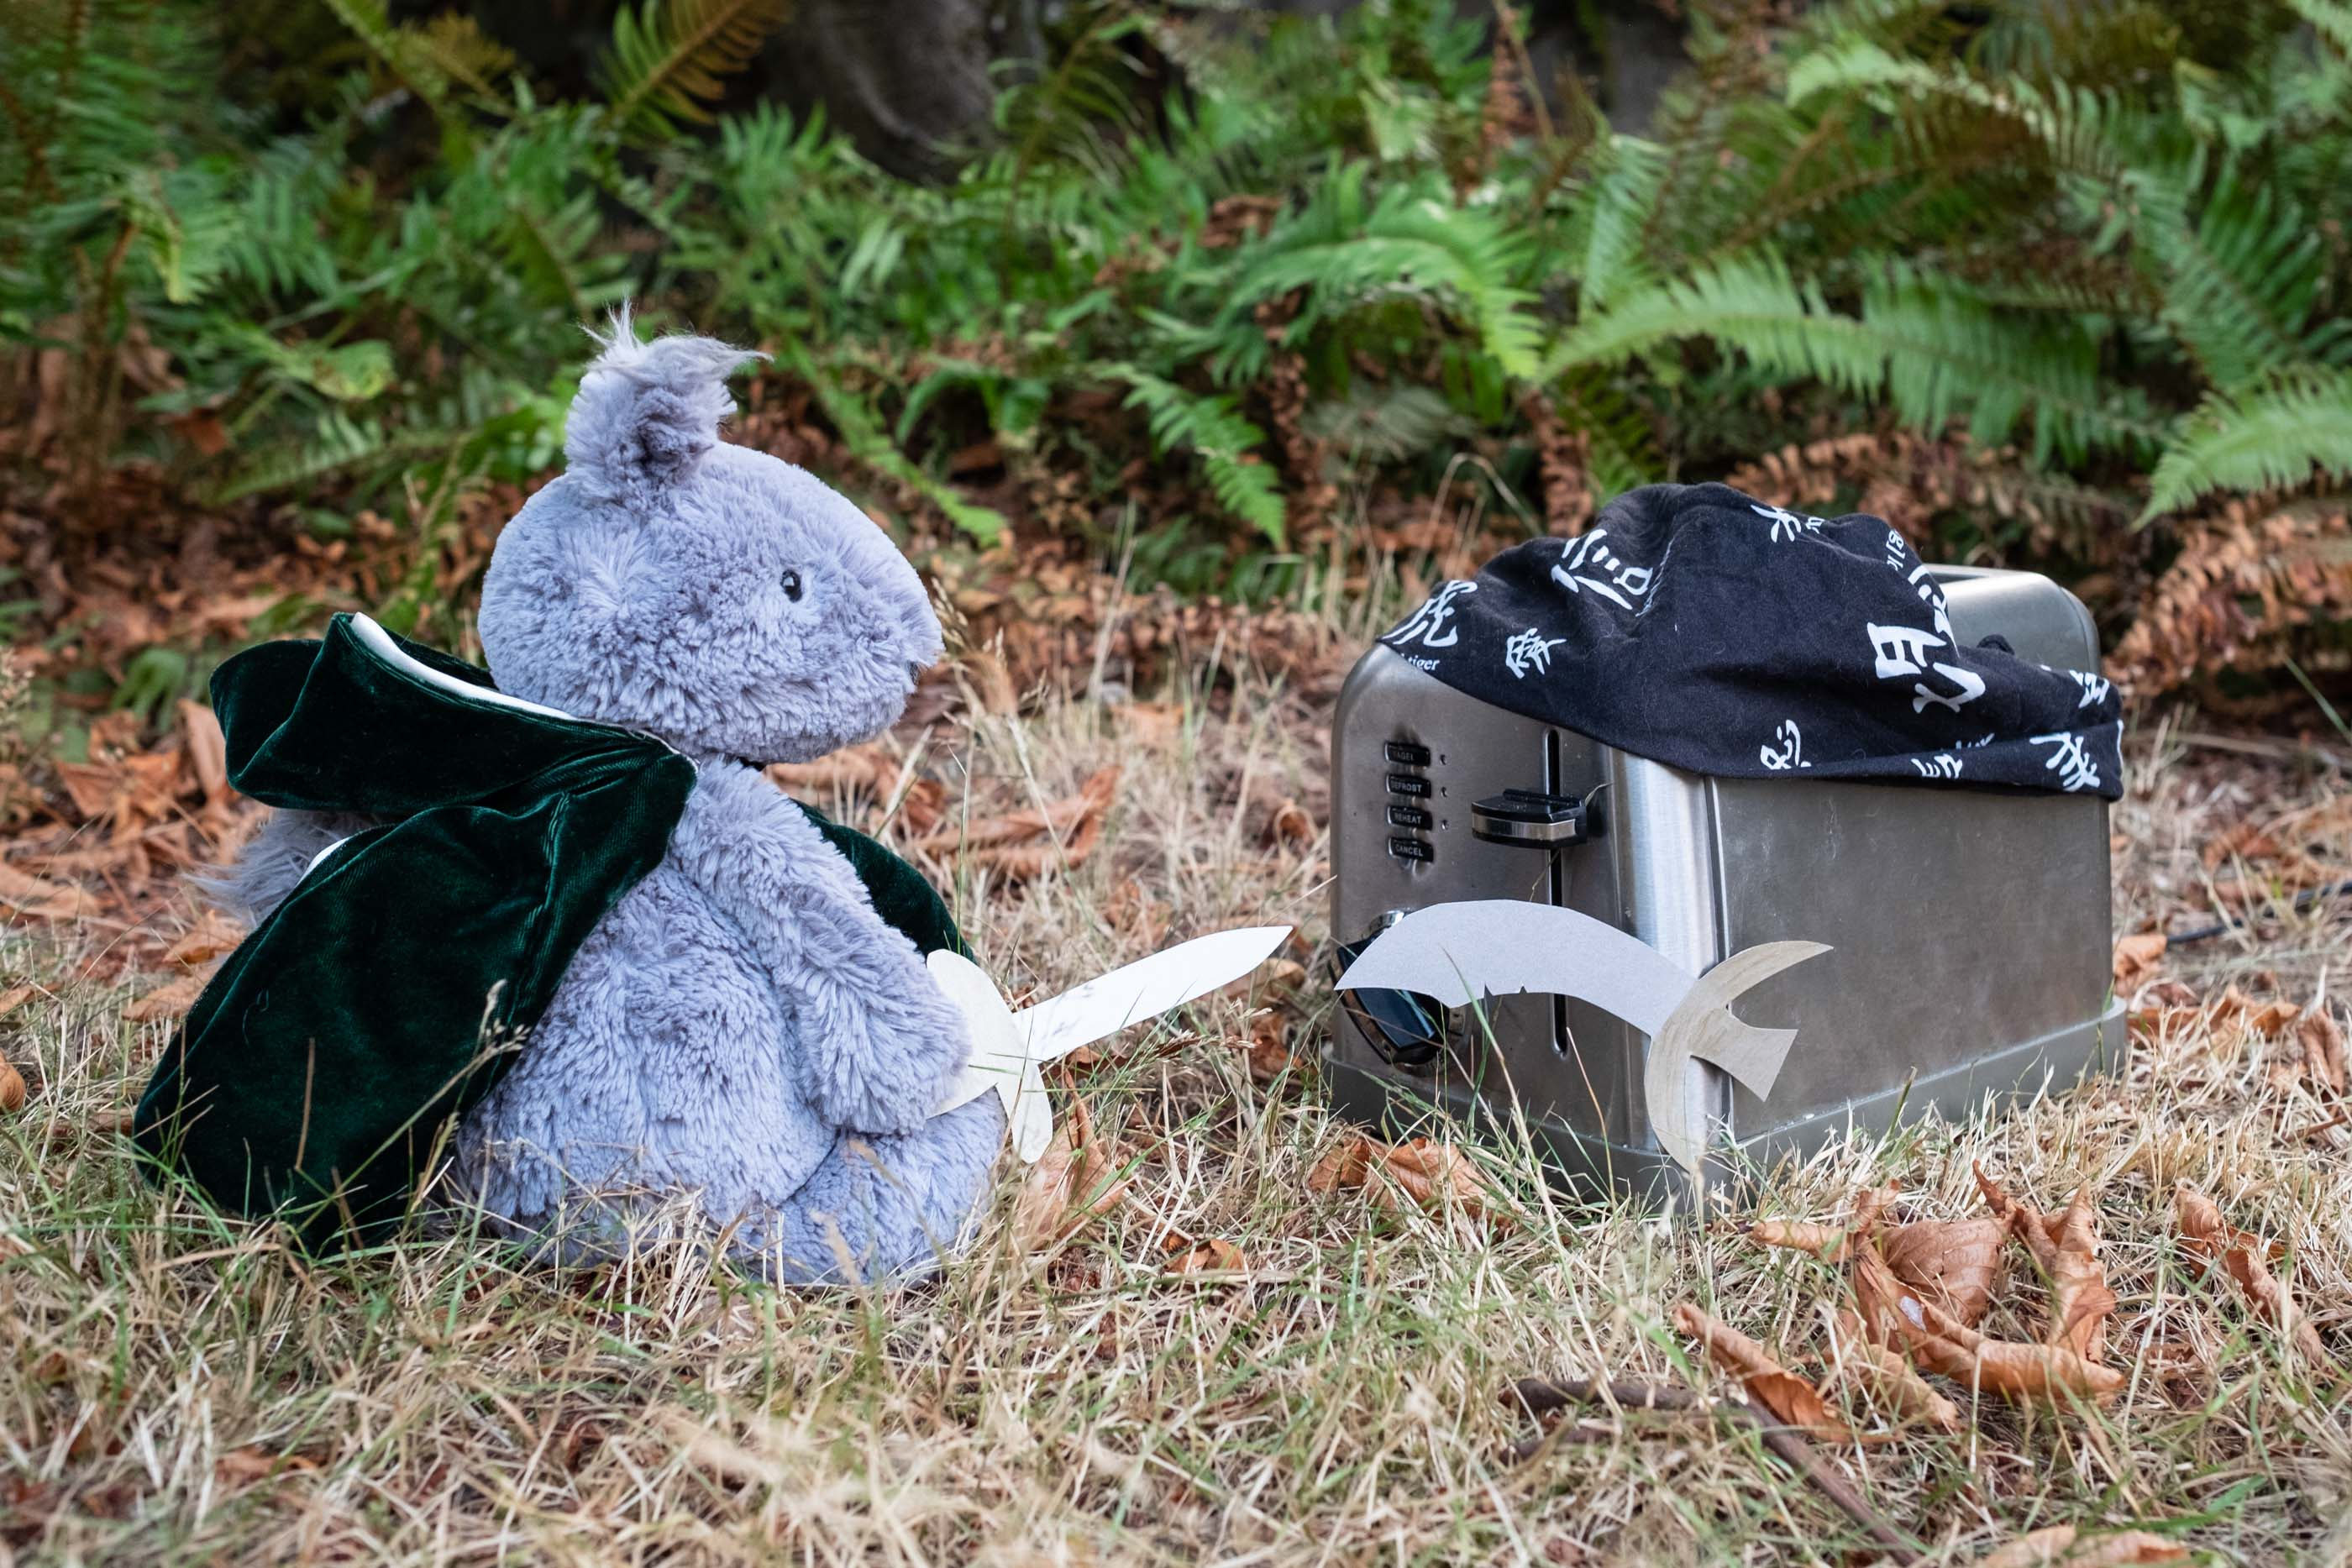 Stuffed animal squirrel fighting a toaster